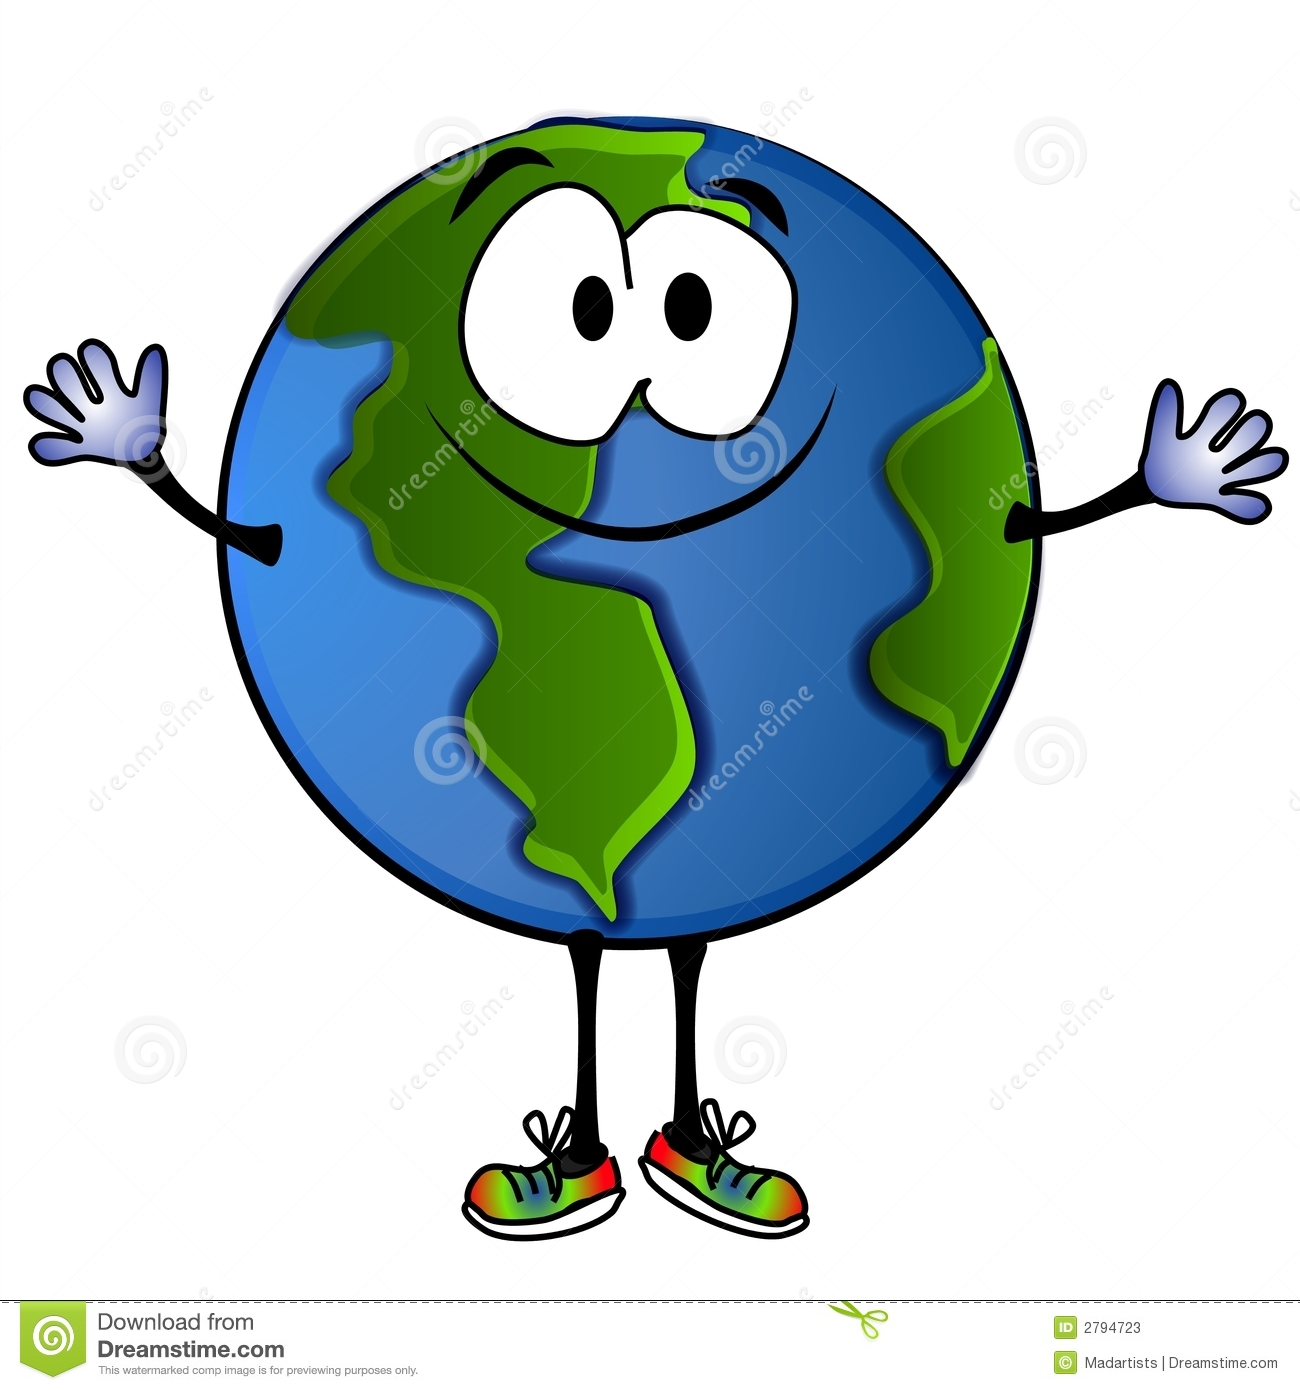 Clip Art Cartoon Illustration Of A Big Fat Smiling Planet Earth With